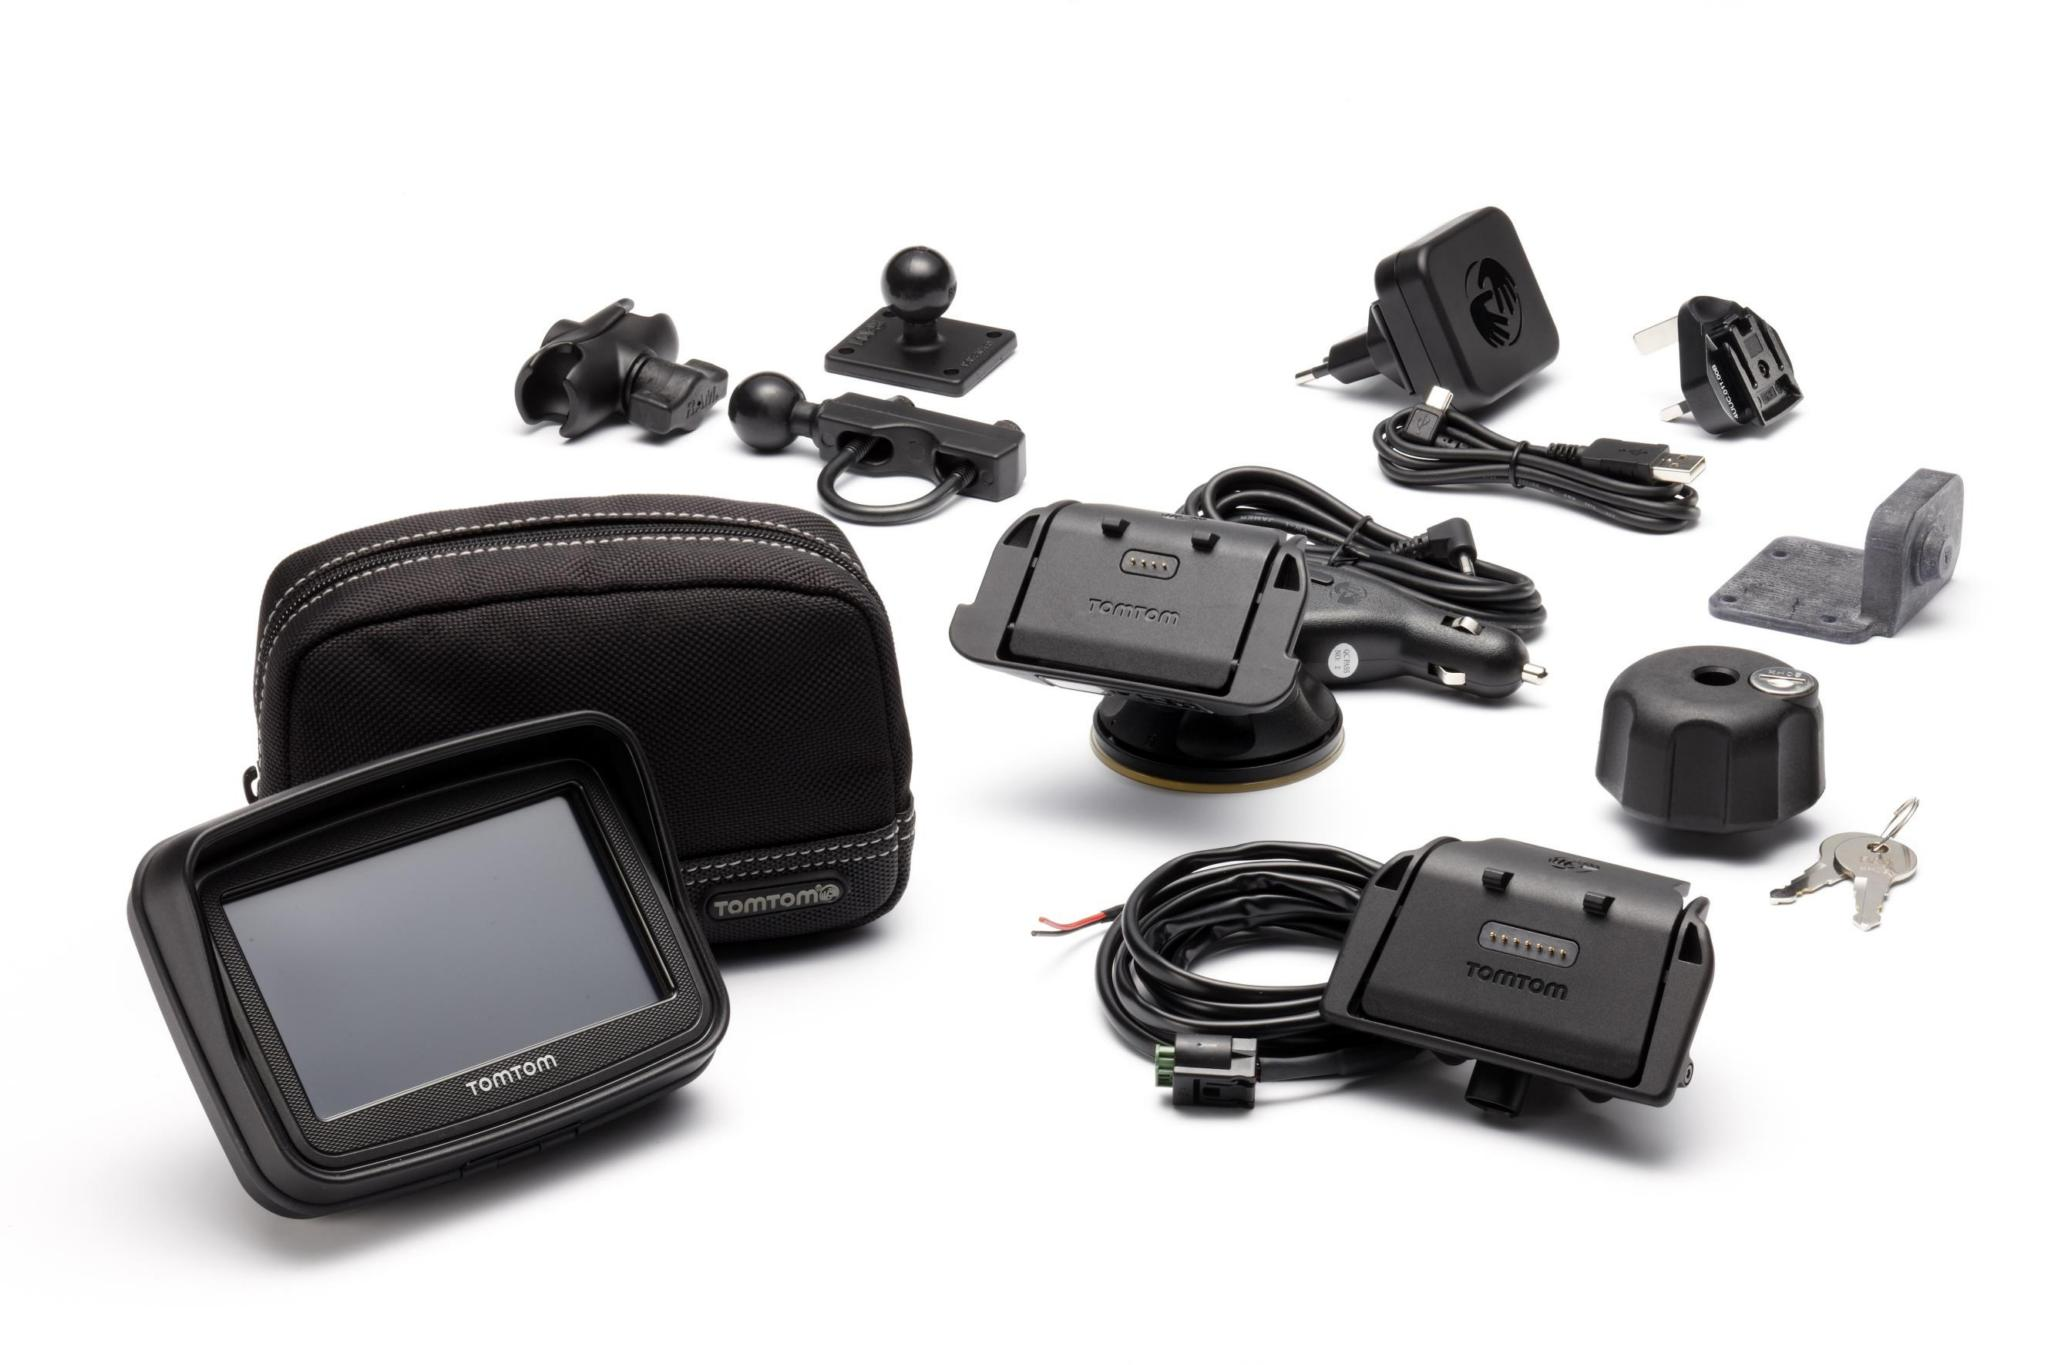 tomtom rider premium the ultimate bike gps package autoevolution. Black Bedroom Furniture Sets. Home Design Ideas